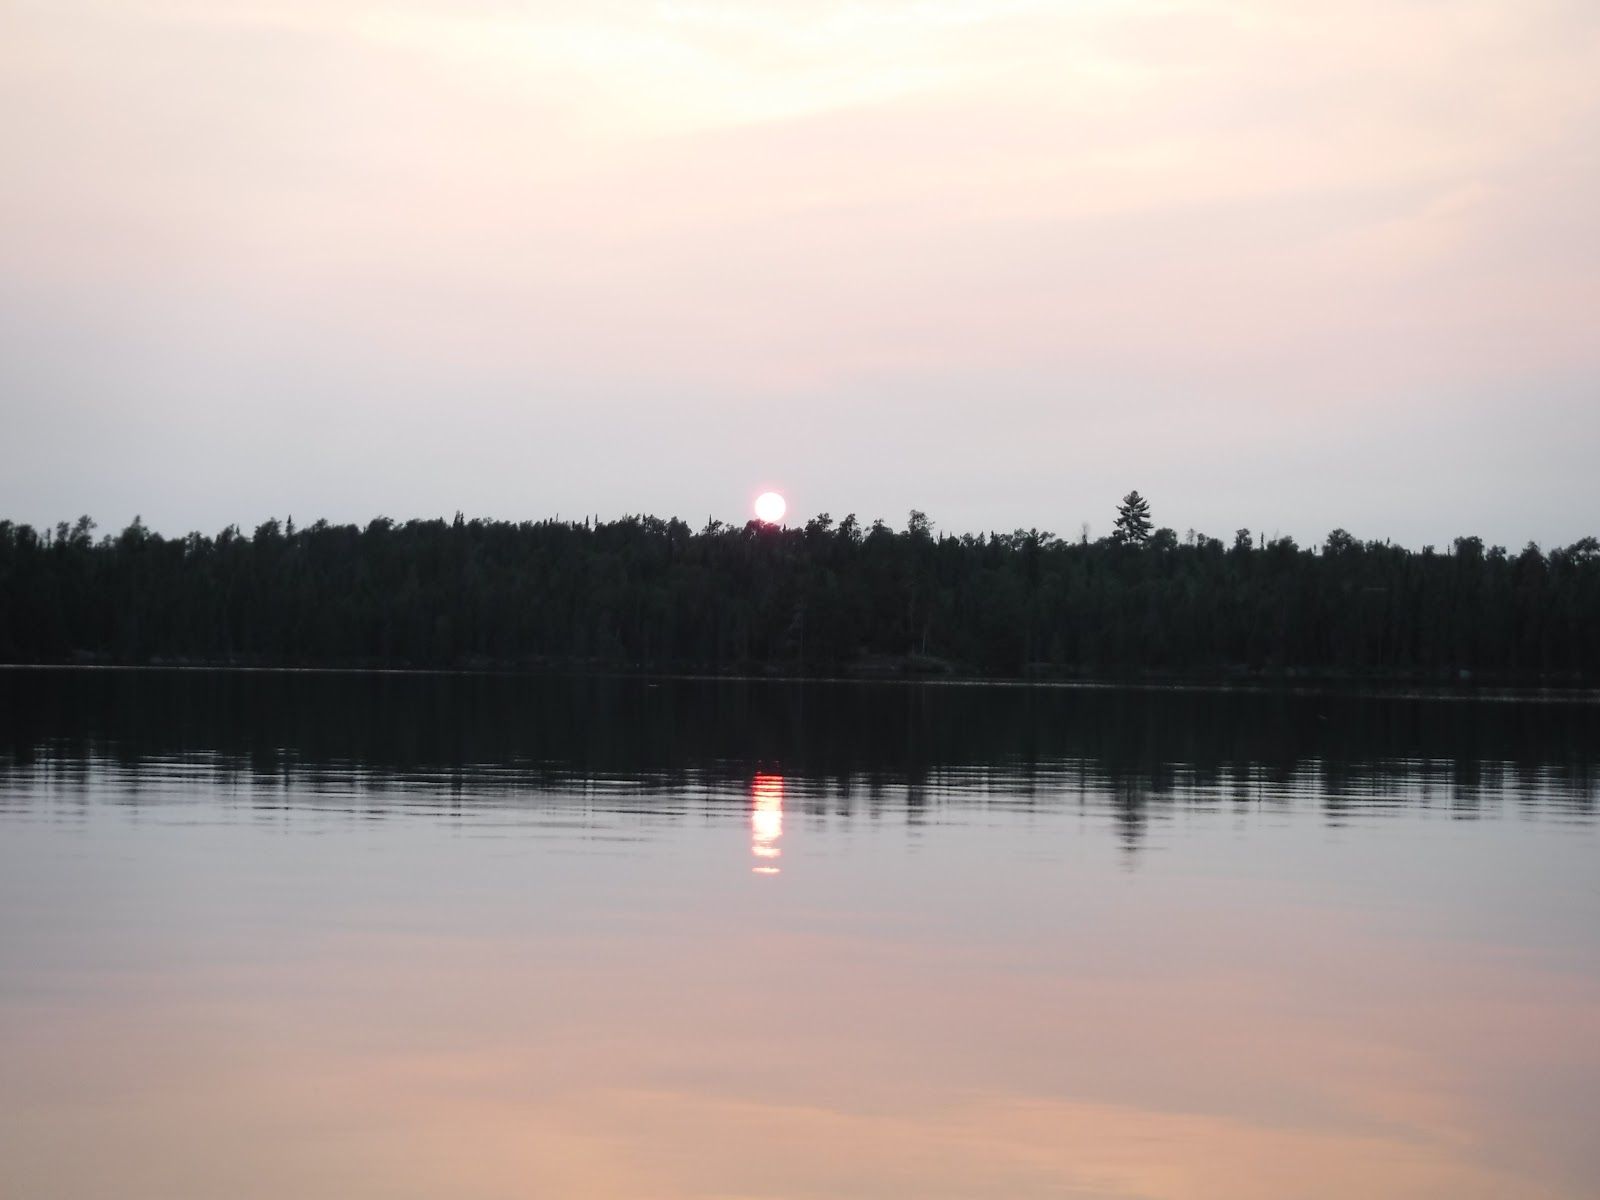 Image by Emily Jahn. Basswood Lake, BWCAW